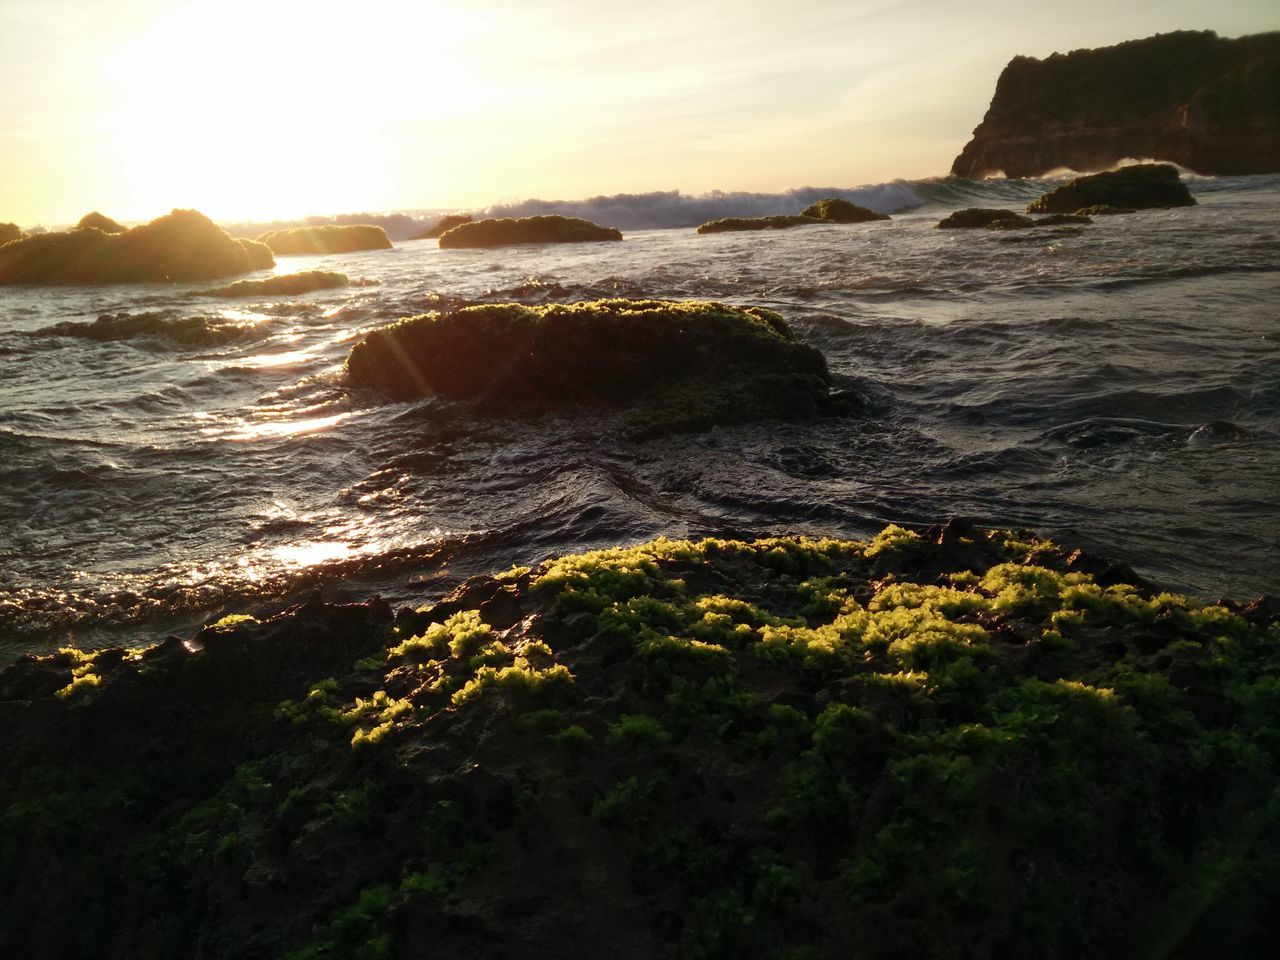 sea, nature, beauty in nature, water, sunset, sunlight, wave, rock - object, no people, scenics, beach, outdoors, tranquility, sky, horizon over water, power in nature, day